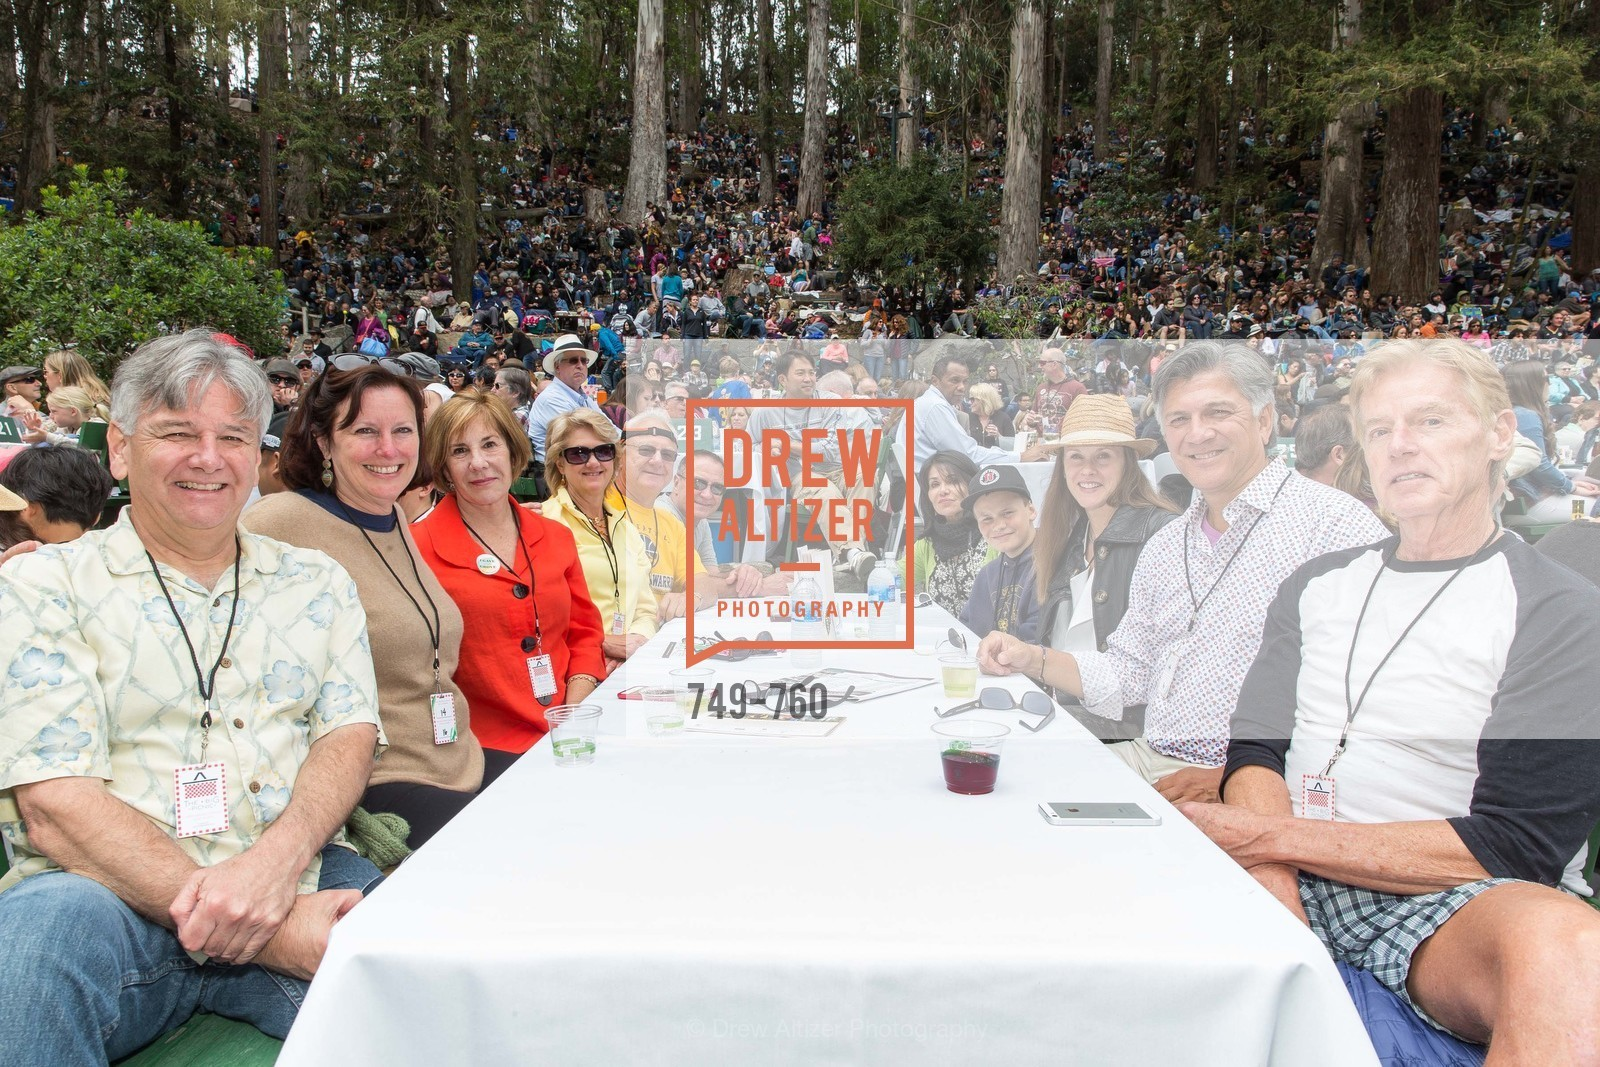 Alexandra Morgan, Terry Byrnes, Mario Diaz, Ken Henderson, The Big Picnic! A Benefit & Concert for STERN GROVE FESTIVAL, US, June 14th, 2015,Drew Altizer, Drew Altizer Photography, full-service agency, private events, San Francisco photographer, photographer california